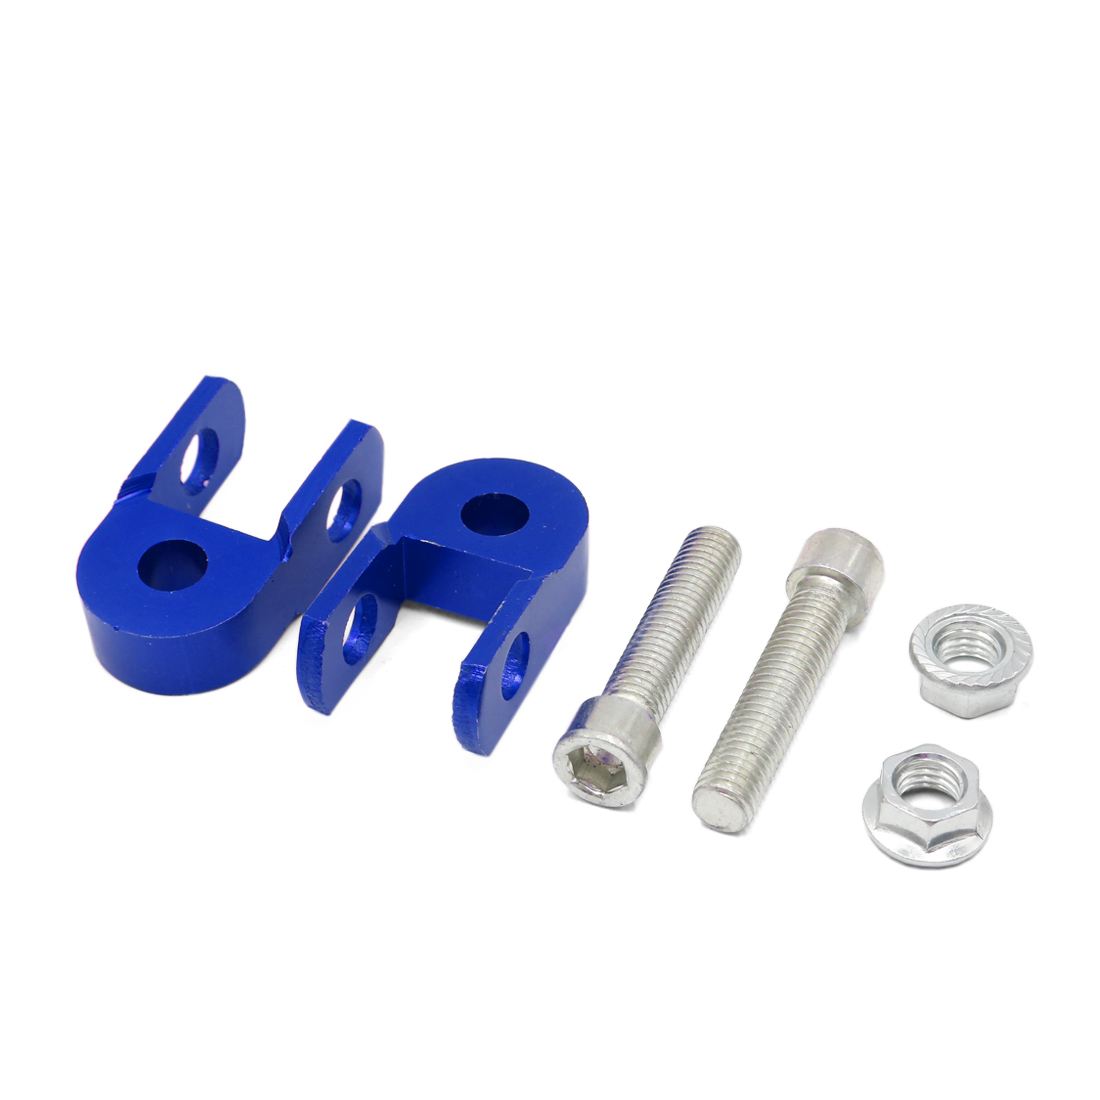 2Pcs Blue Motorcycle Shock Absorber Height Extension Jack Up Riser Suspension